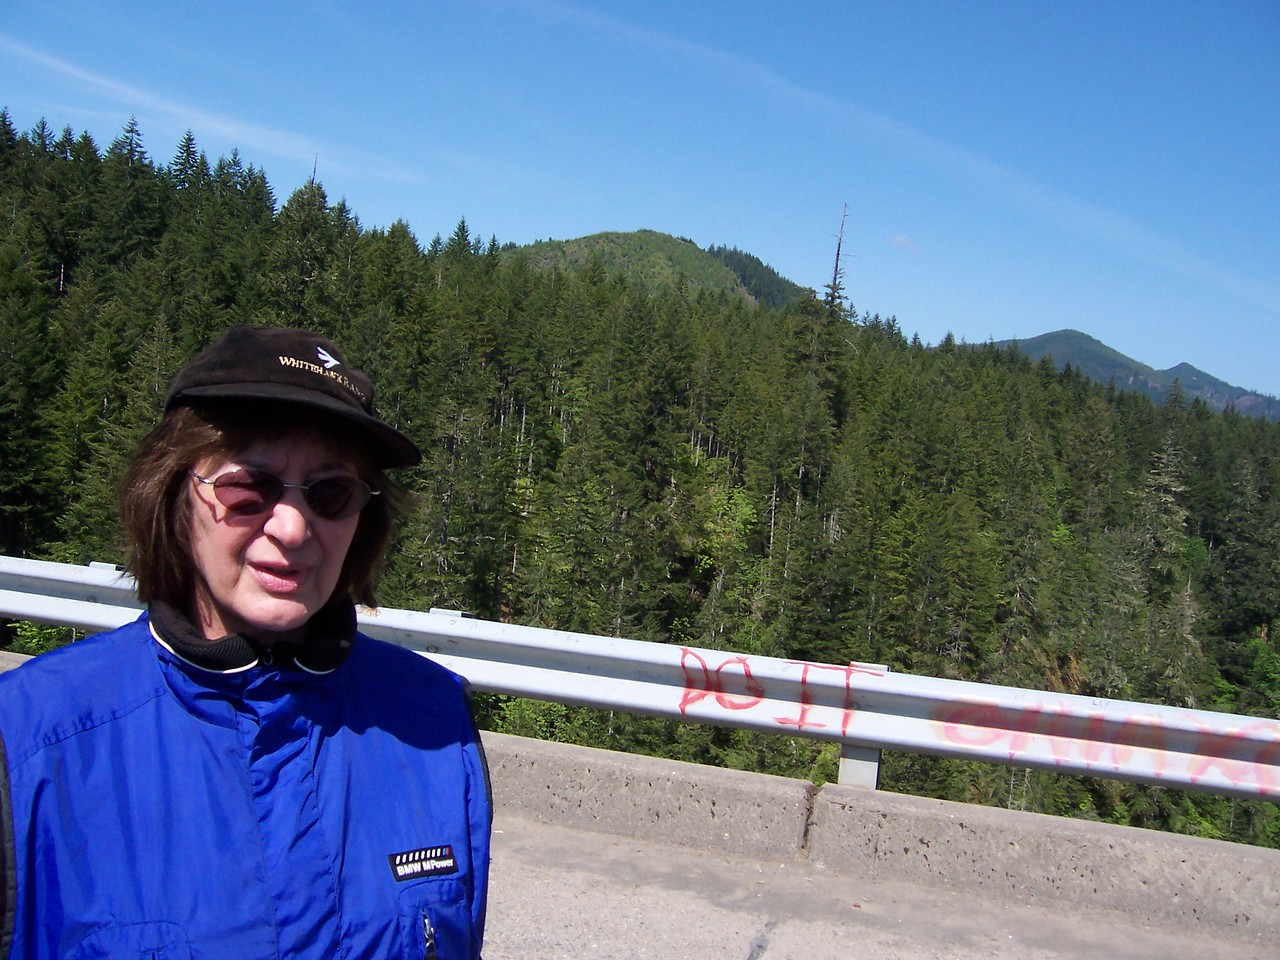 We shot from the top of the hill off Sylvia's left shoulder to the bridge, a distance of over 6000'.